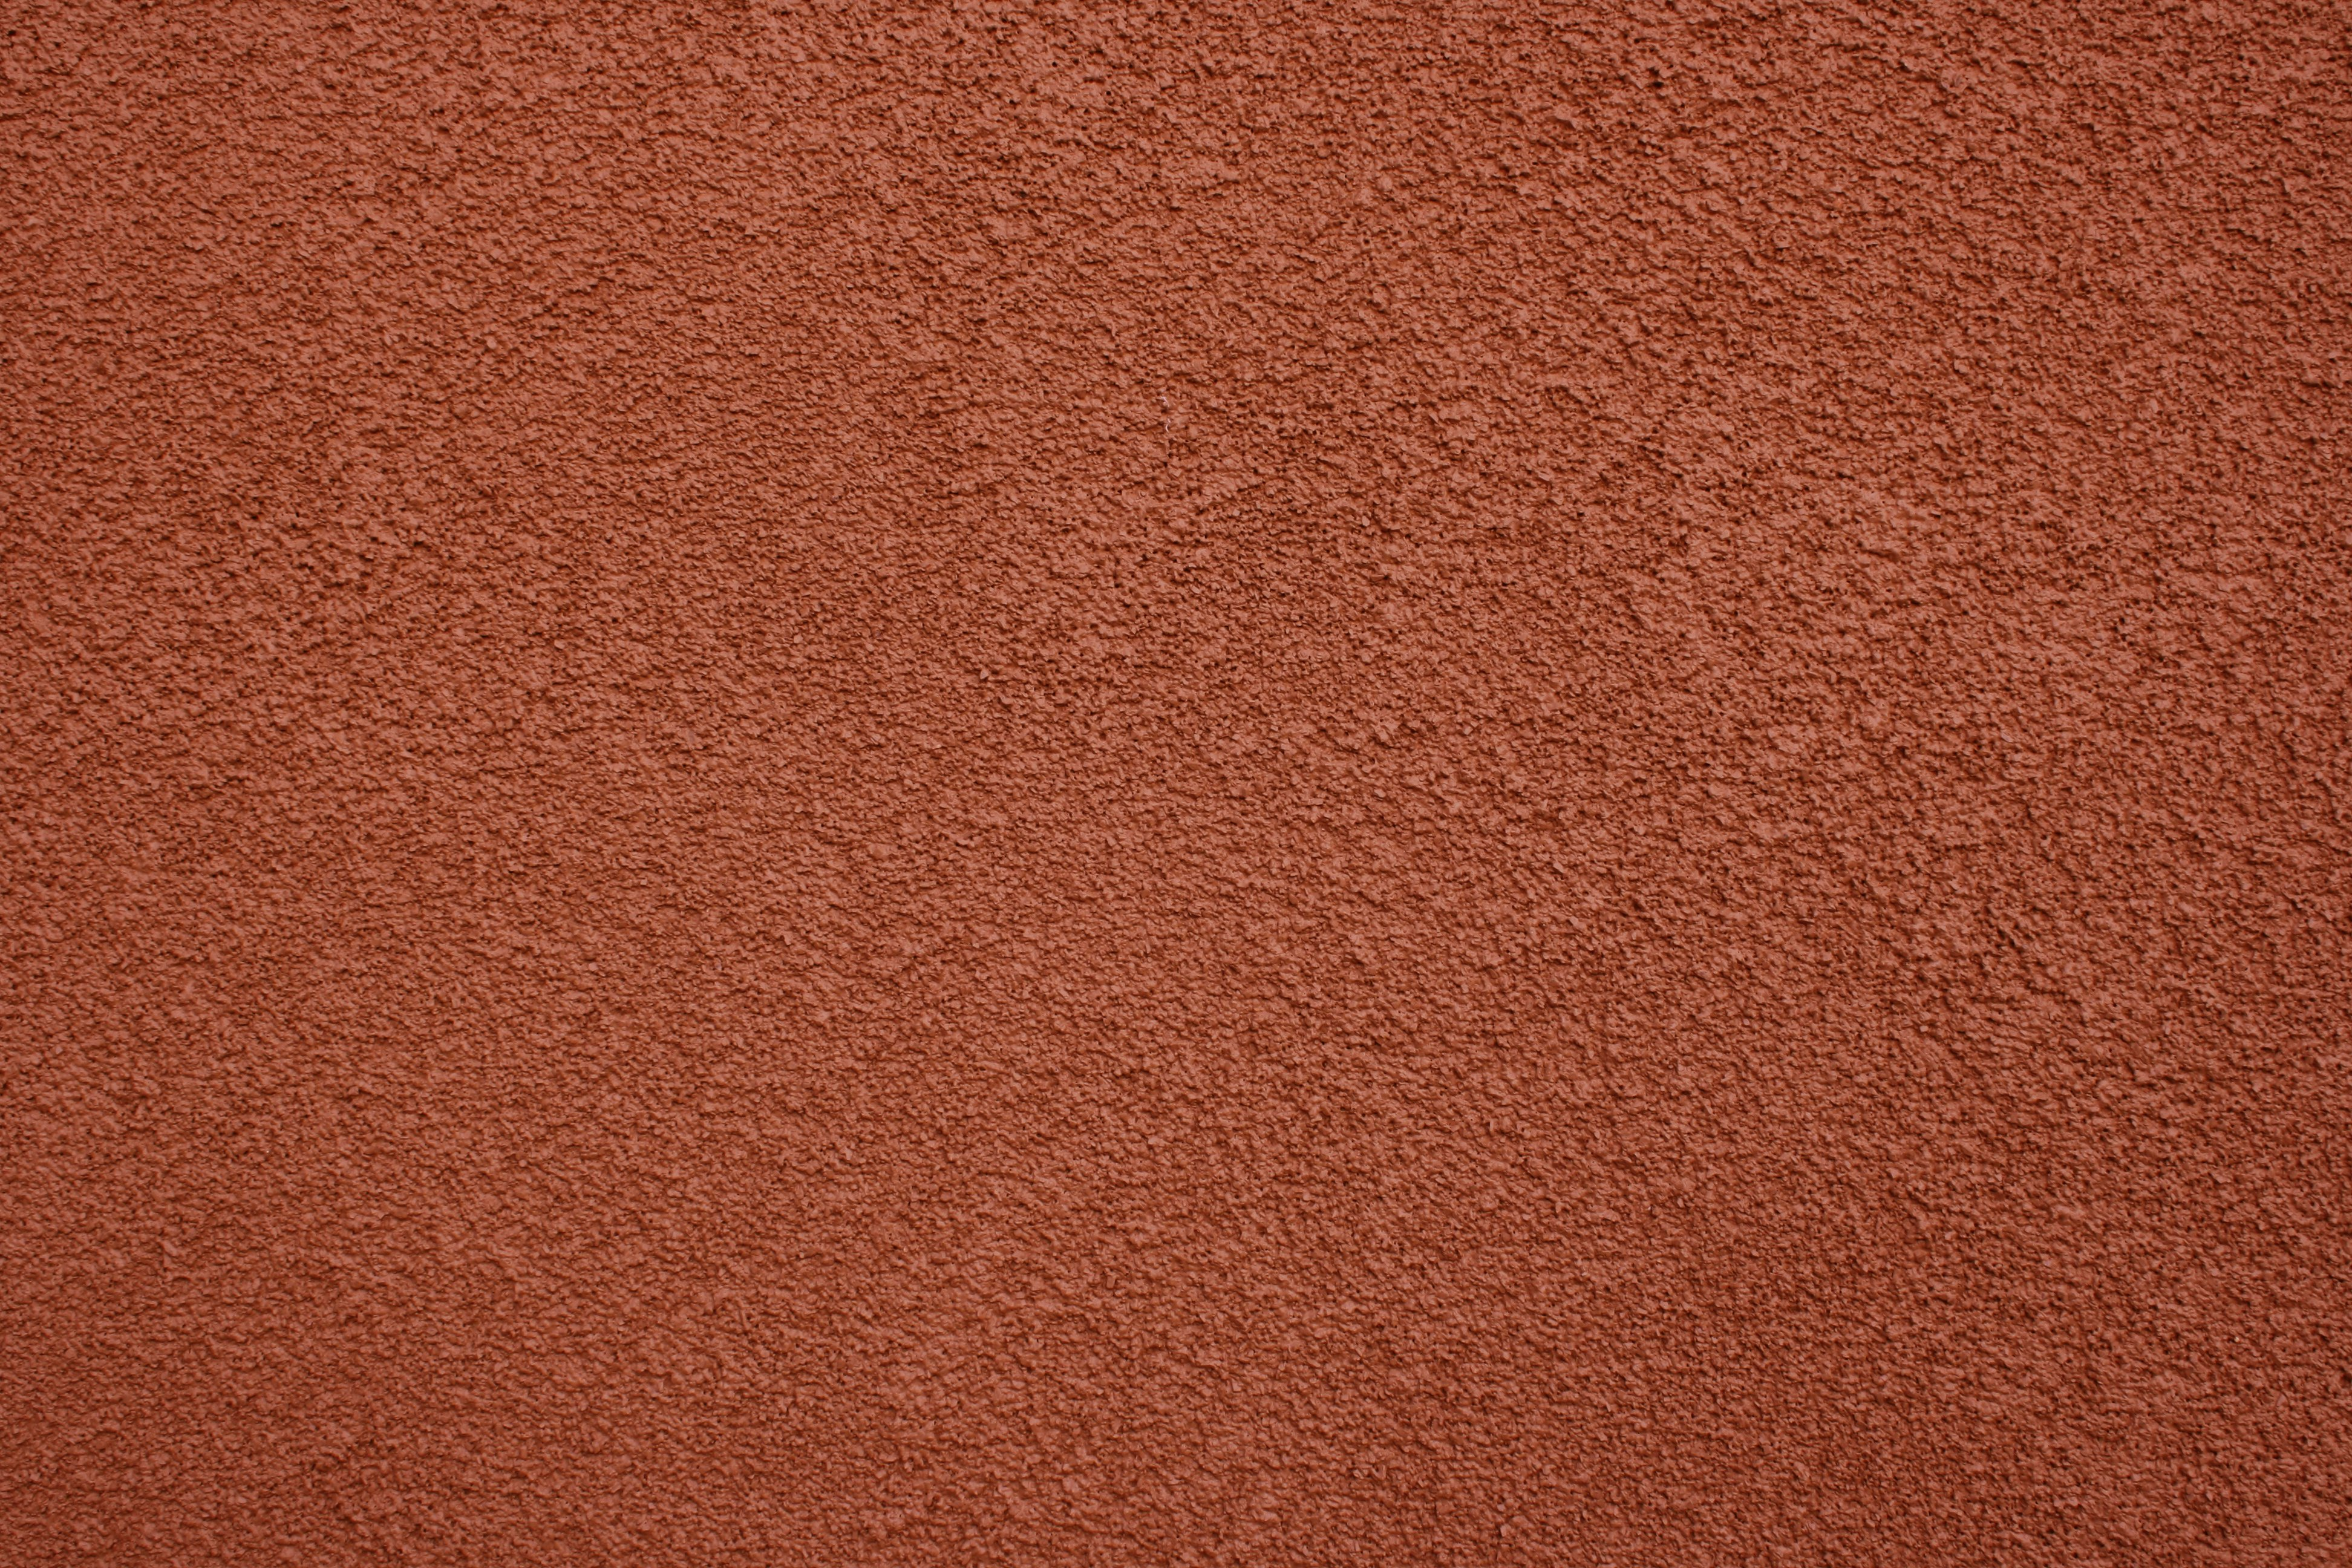 red stucco, texture, download photo, background, red stucco background texture